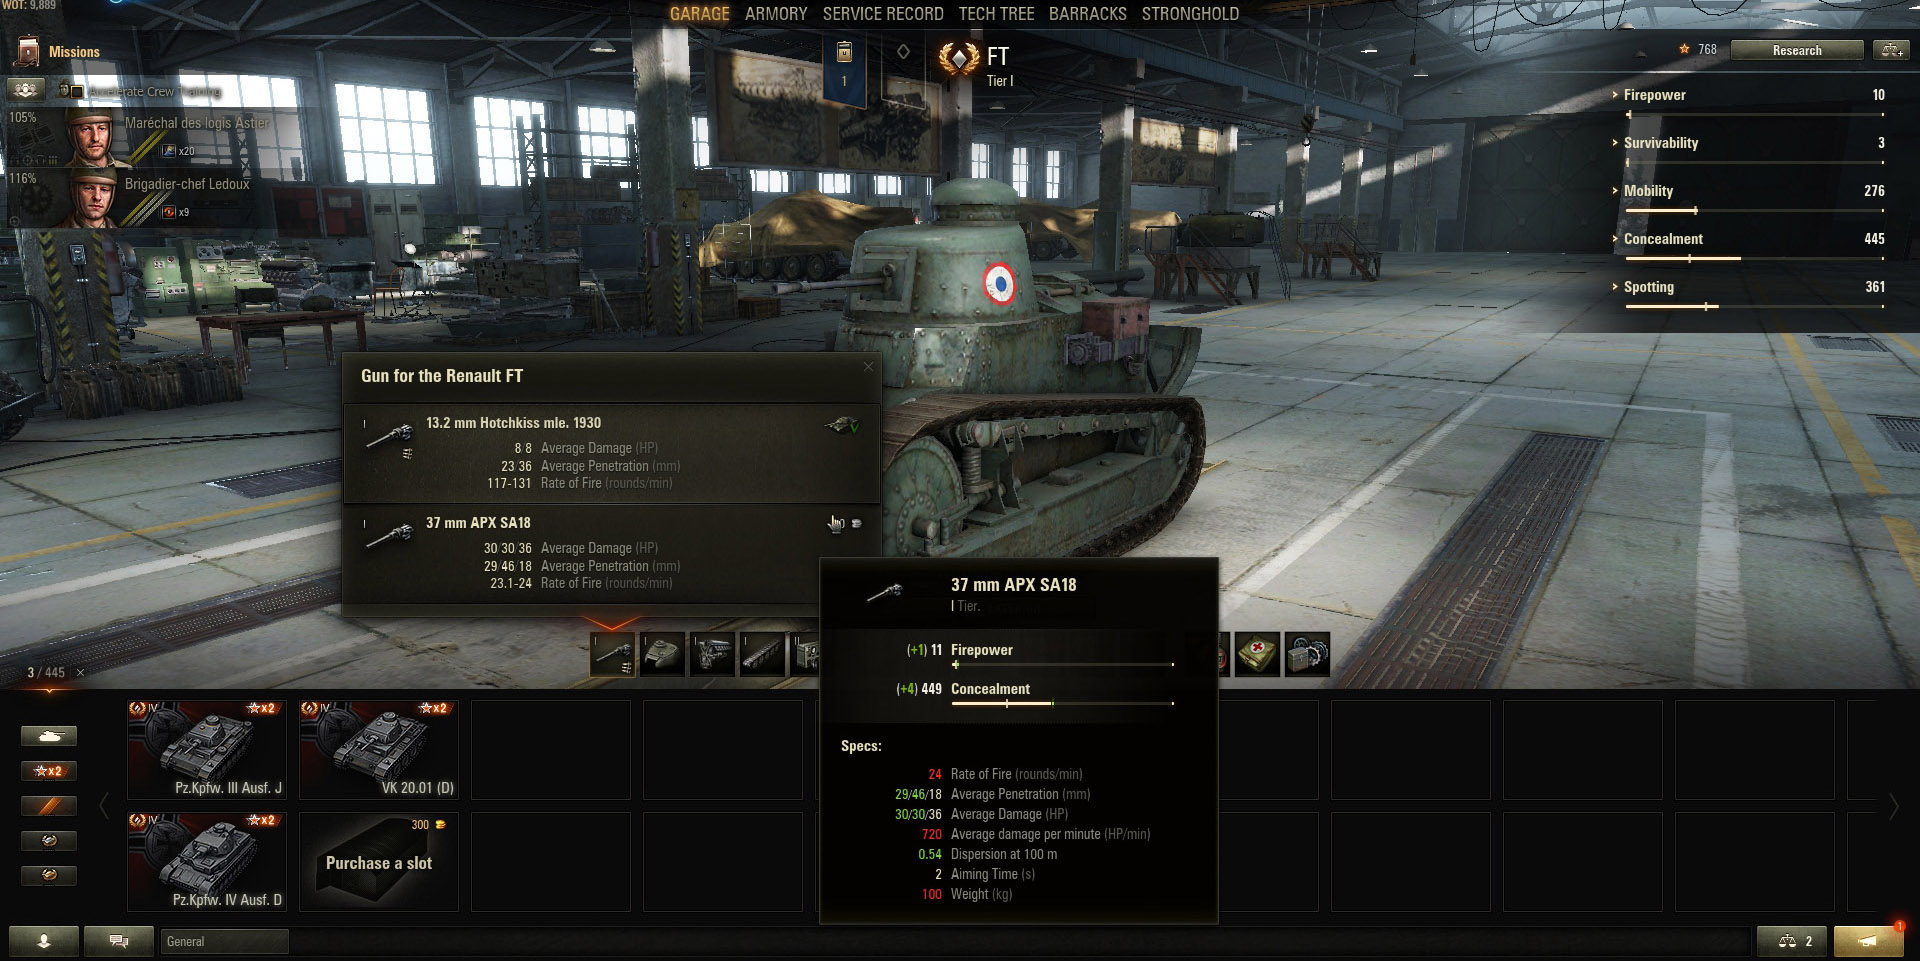 With only two guns, the Renault FT in World of Tanks offers little variety.